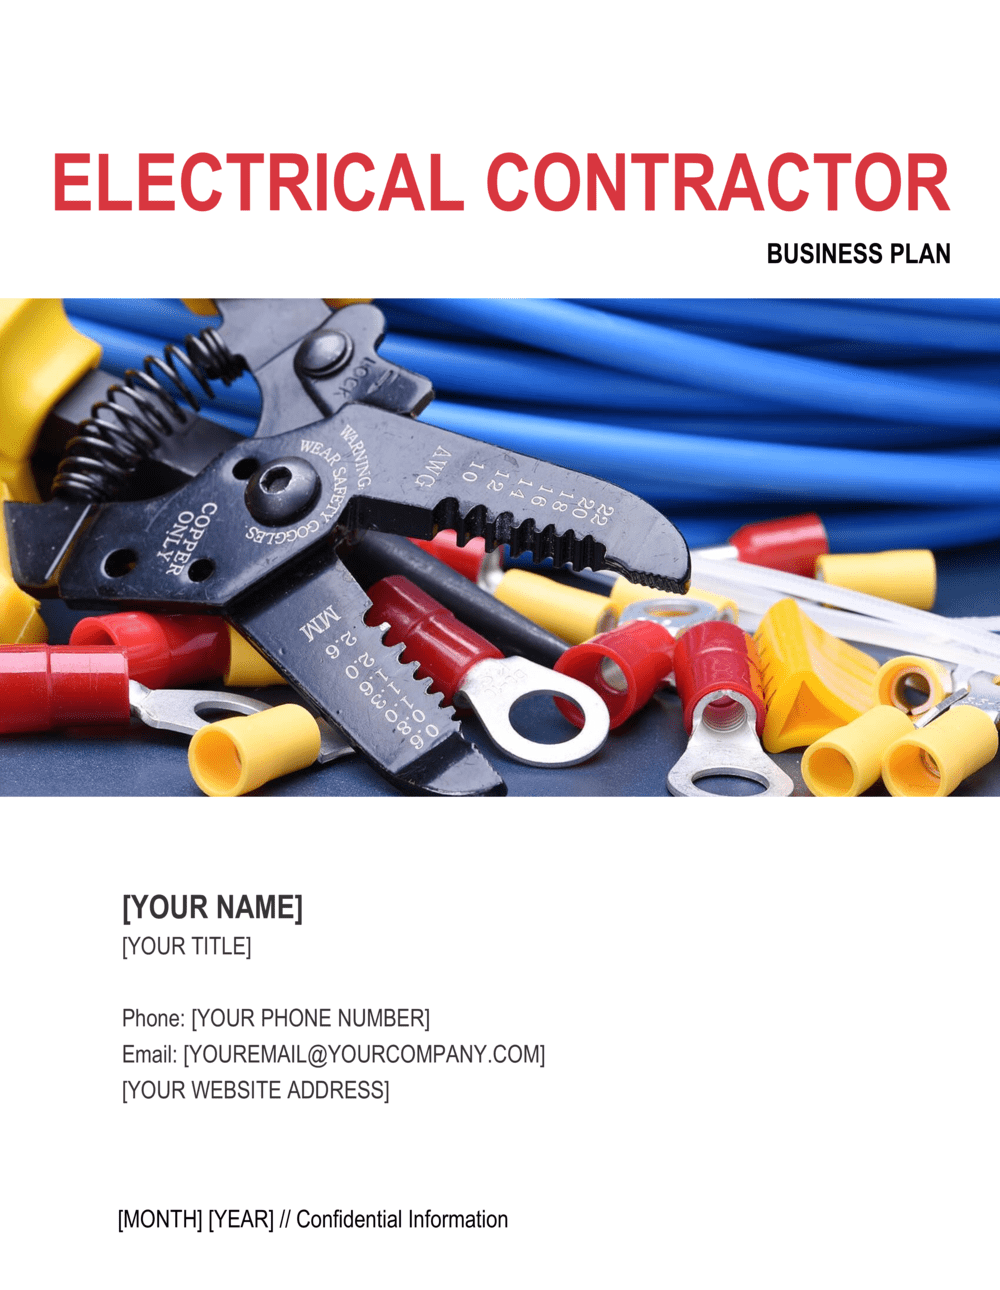 Business-in-a-Box's Electrical Contractor Business Plan Template